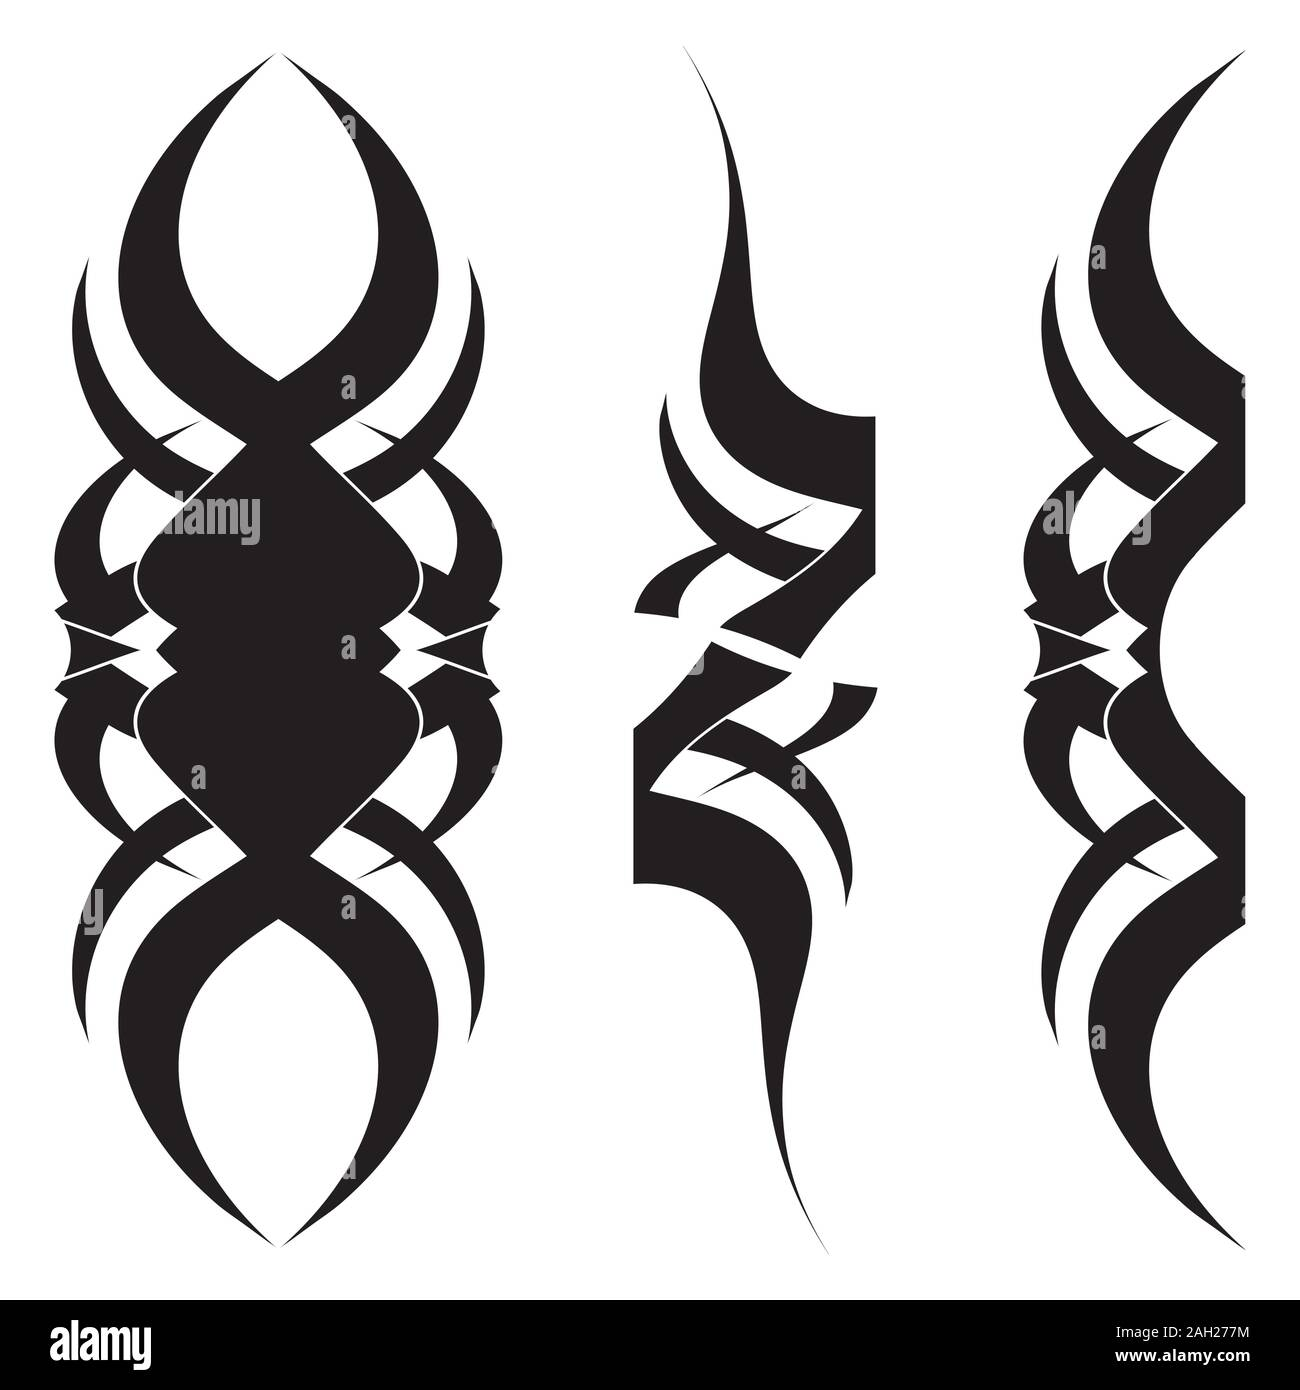 Tattoo Types Design Vector Illustration With Tribal Tattoo Isolated On White Stock Vector Image Art Alamy This includes tattoos done in someone's home. https www alamy com tattoo types design vector illustration with tribal tattoo isolated on white image337495752 html